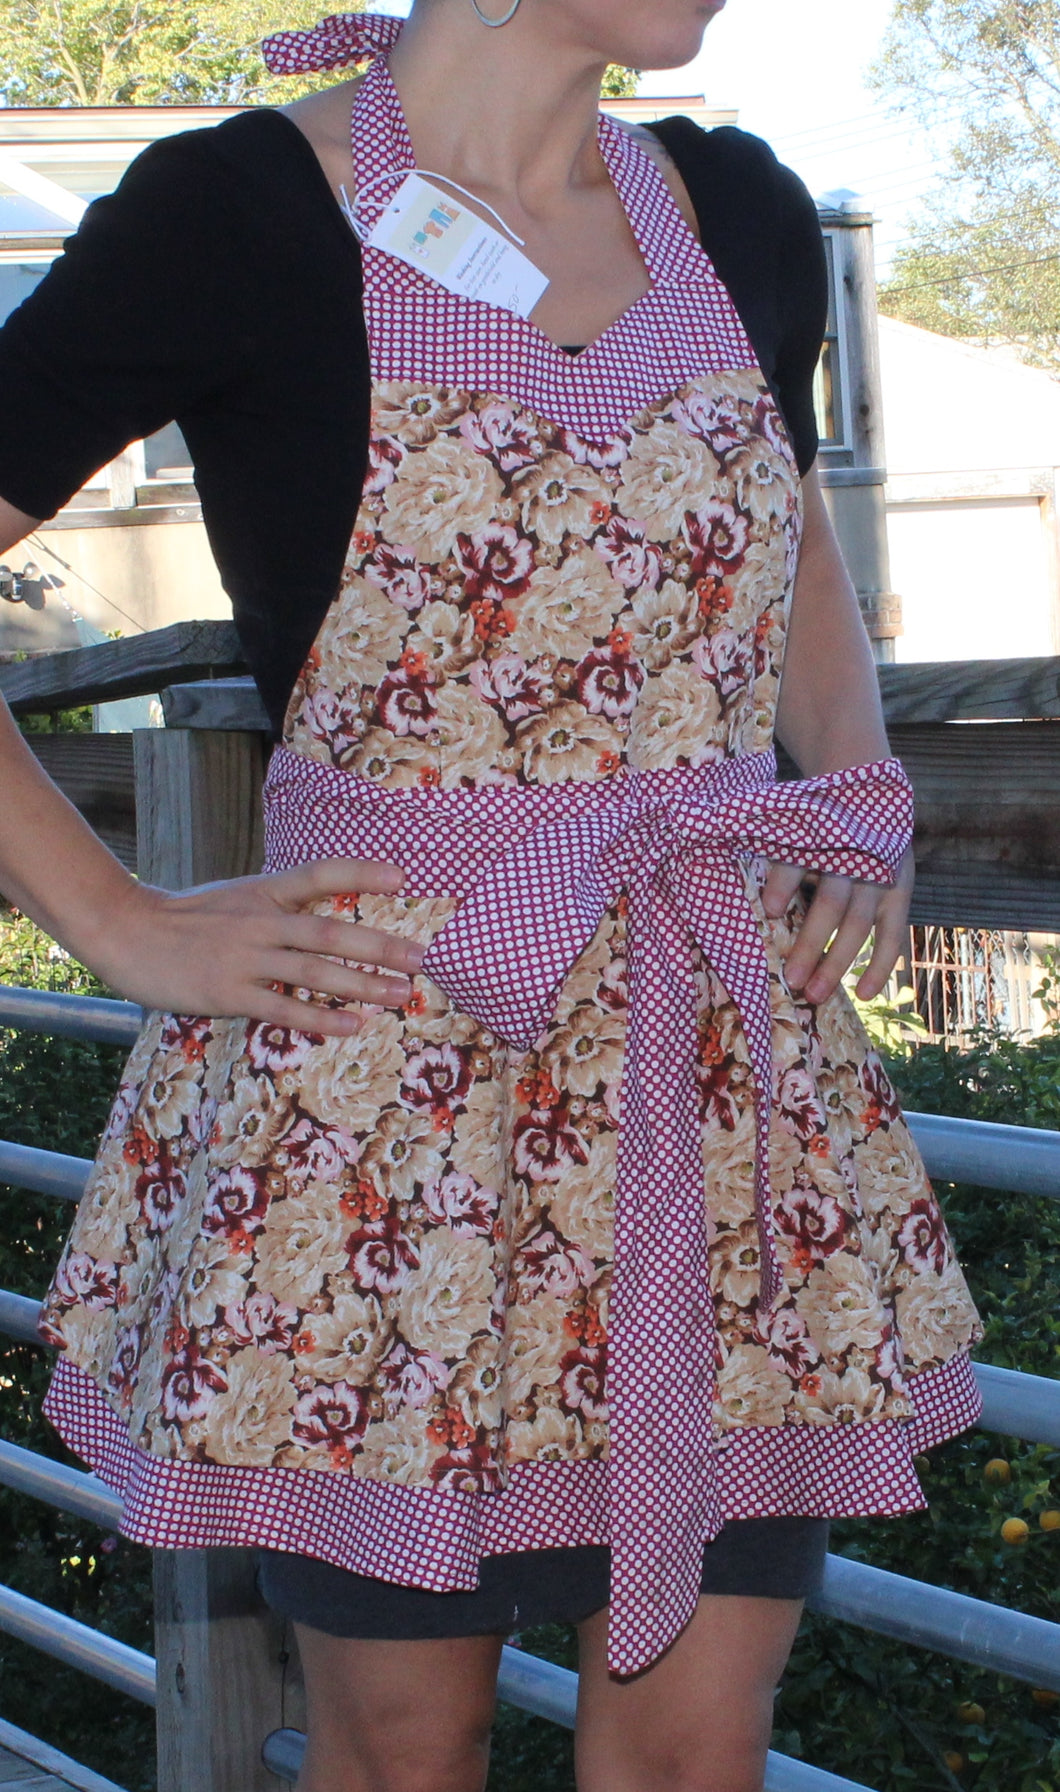 Flirty Apron - Maroon Floral with Polka Dot Trim